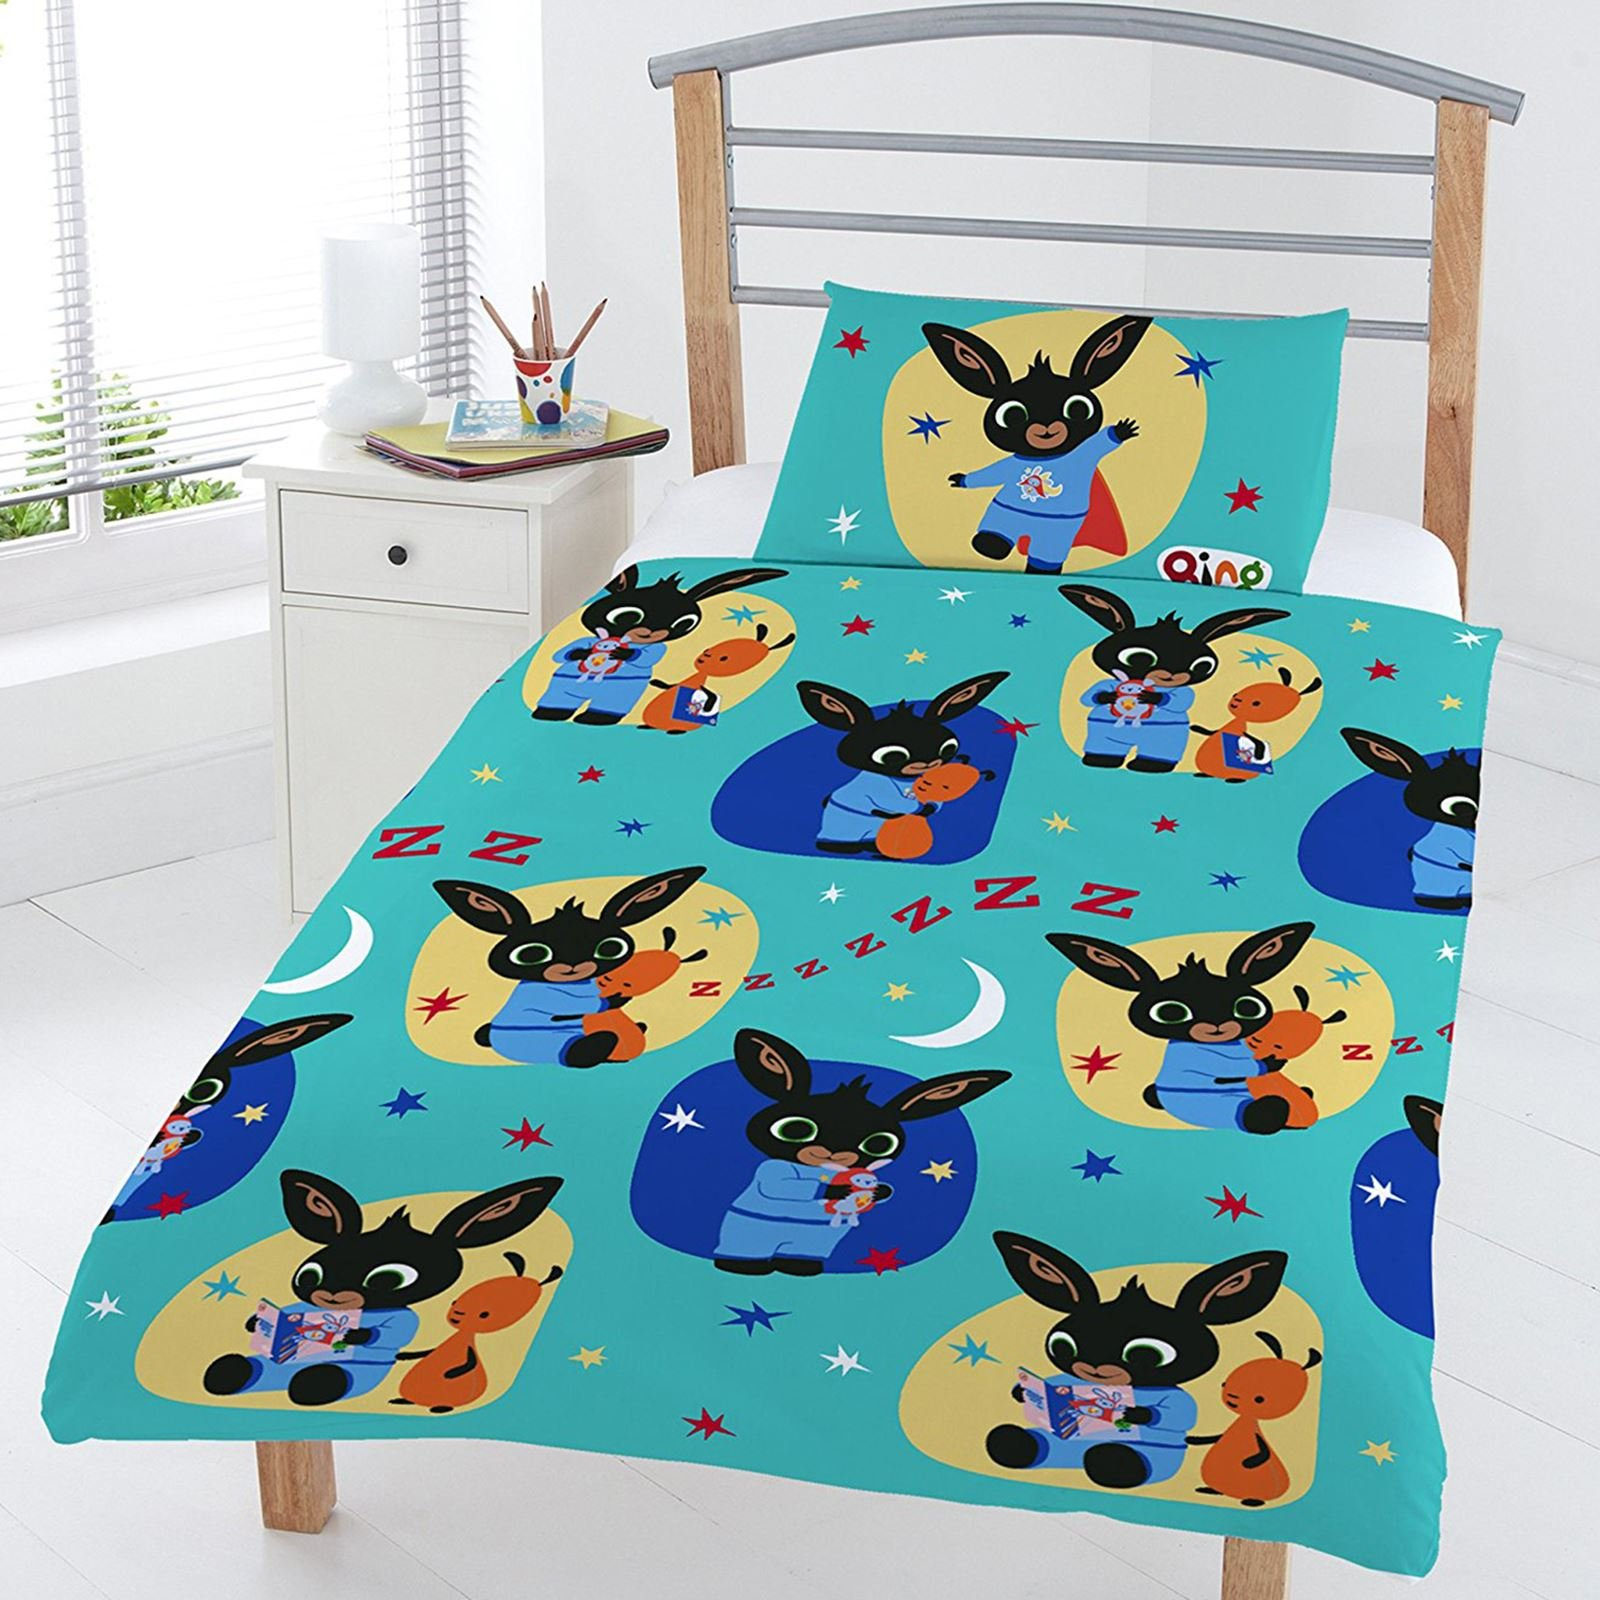 Bing Bunny Junior/Toddler Rotary Duvet Cover Set (JR1-BIN-BED-06) by Bing Bunny